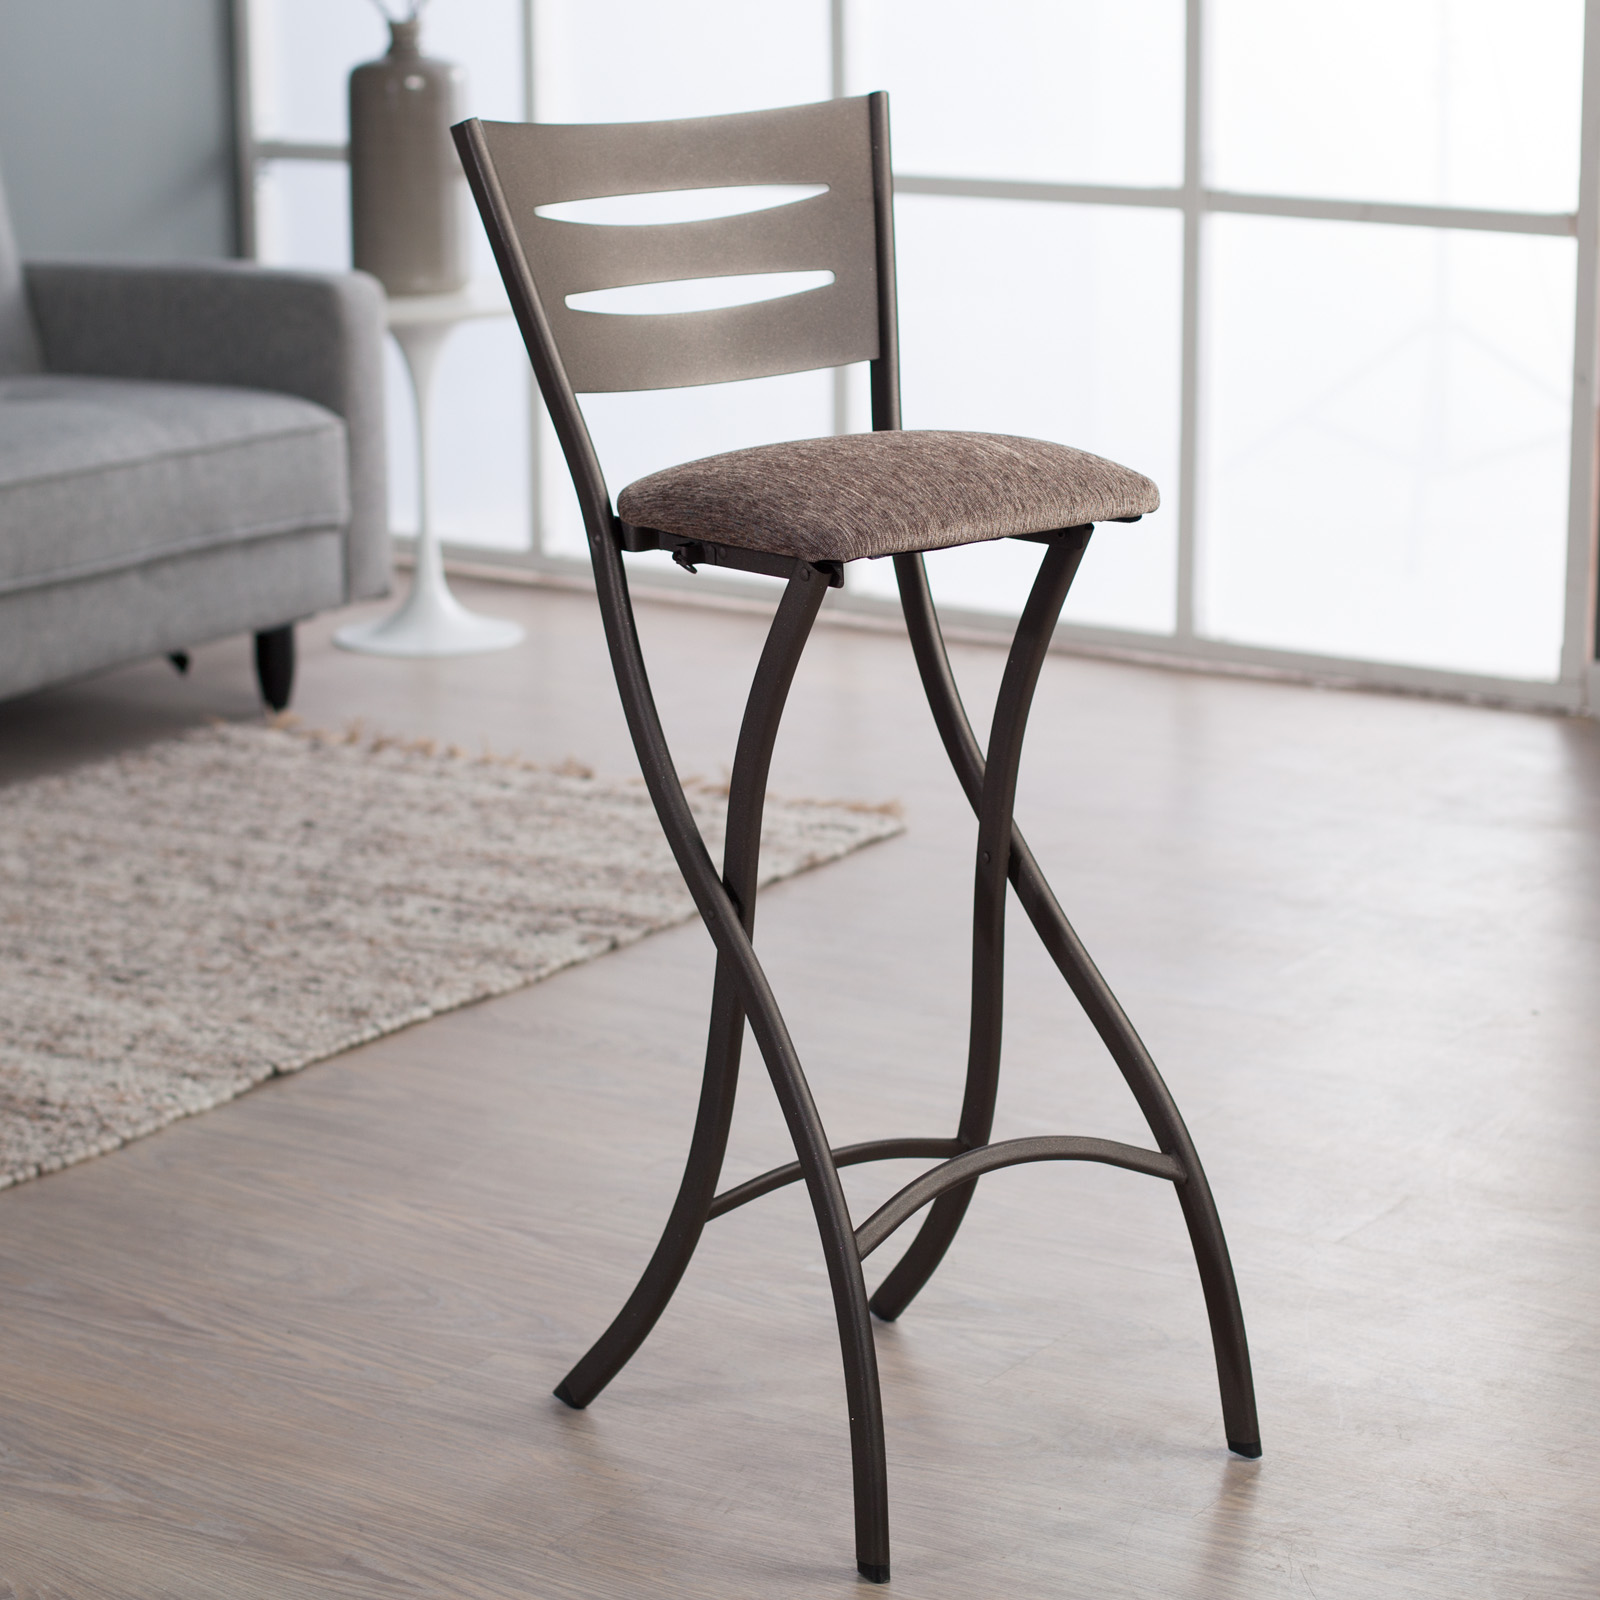 Bar Stools For Sale Shop At Hayneedle Com